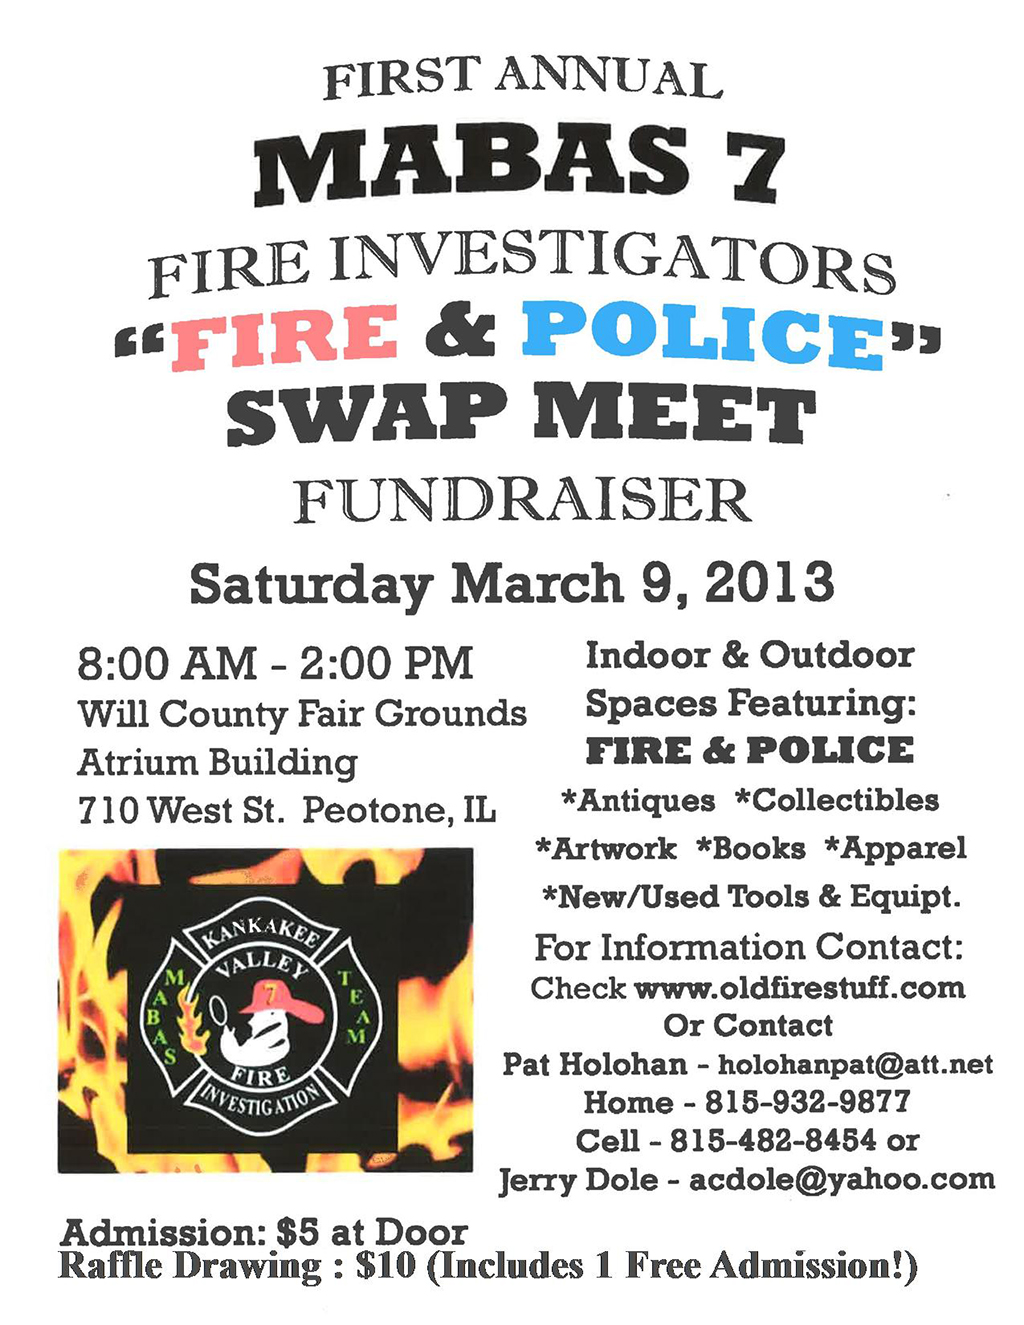 Fire & Police Swap Meet